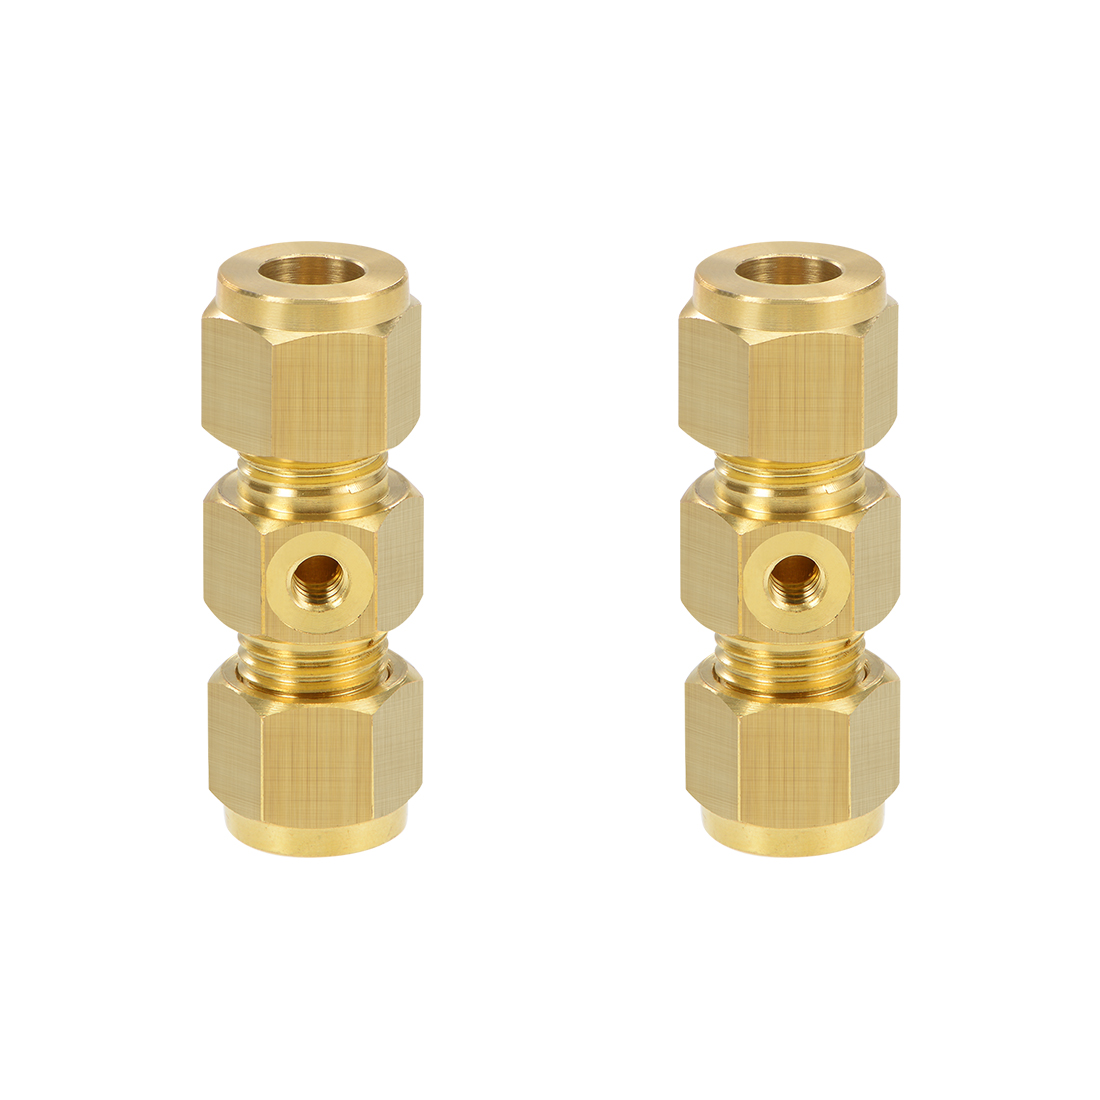 Brass Compression Tube Fitting 9.8mm OD UNC 10-24 Nozzle Hole Pipe Adapter 2pcs